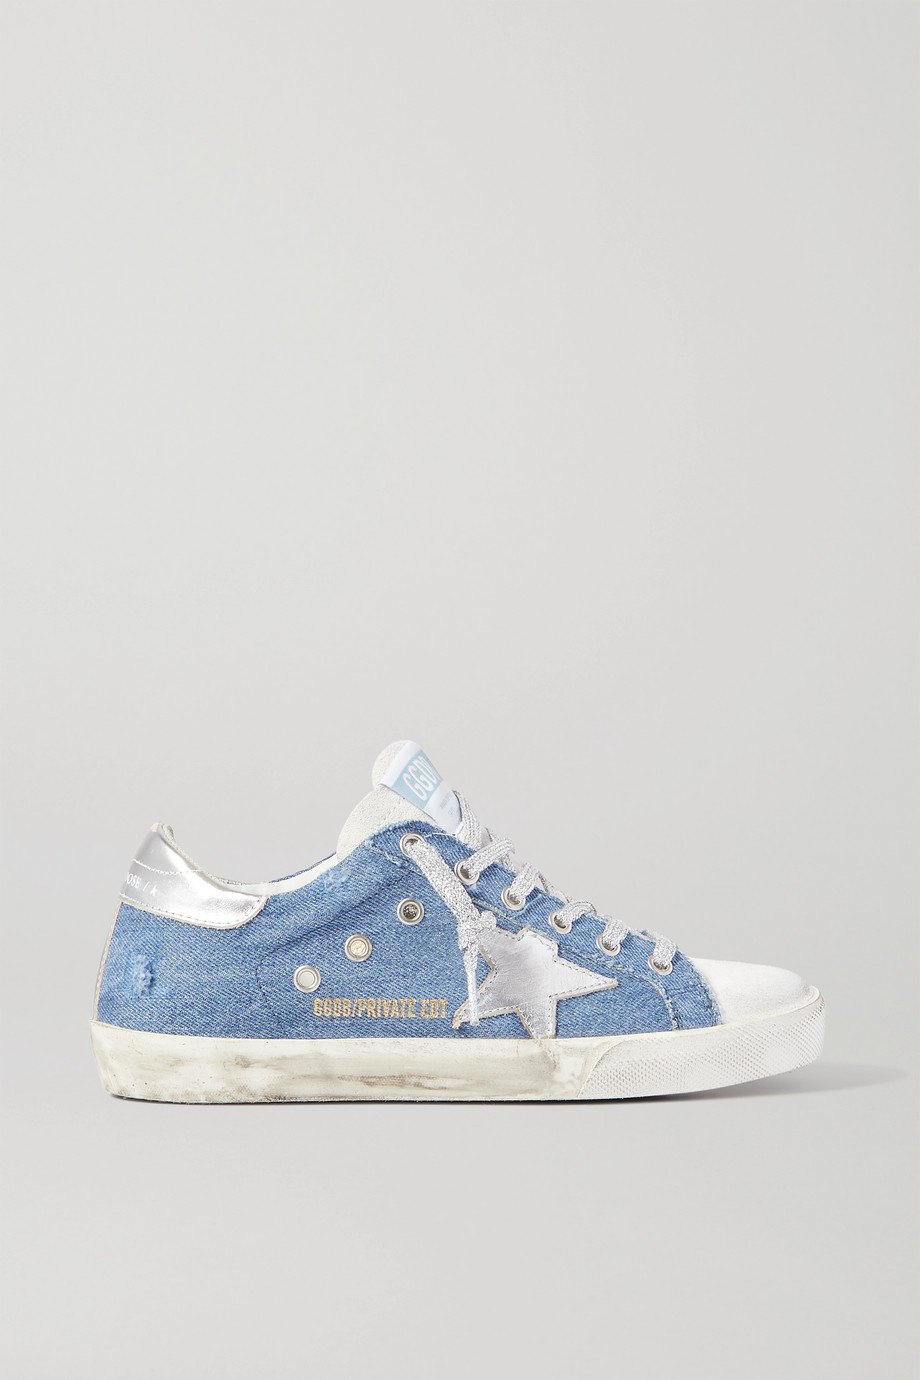 Golden Goose Superstar distressed denim and leather sneakers